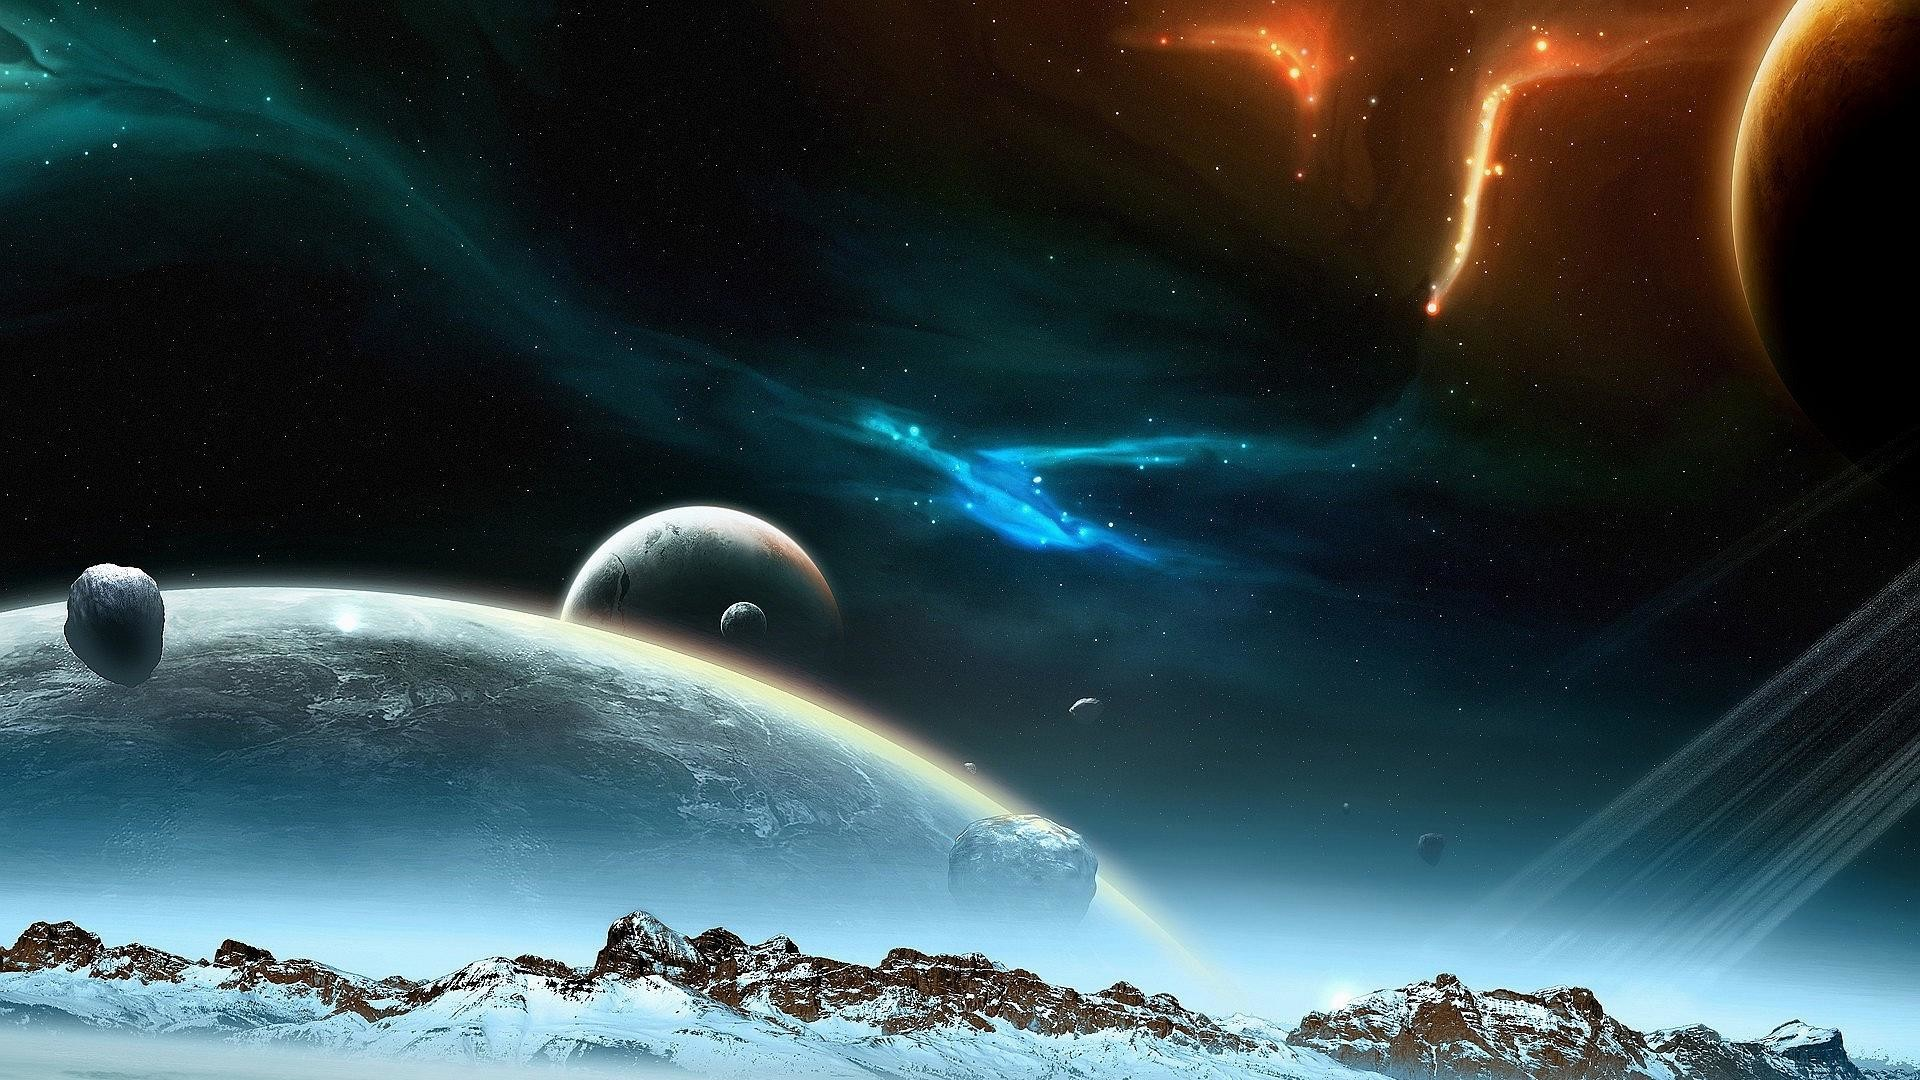 wallpaper.wiki-1080p-Space-Background-Free-Download-PIC-